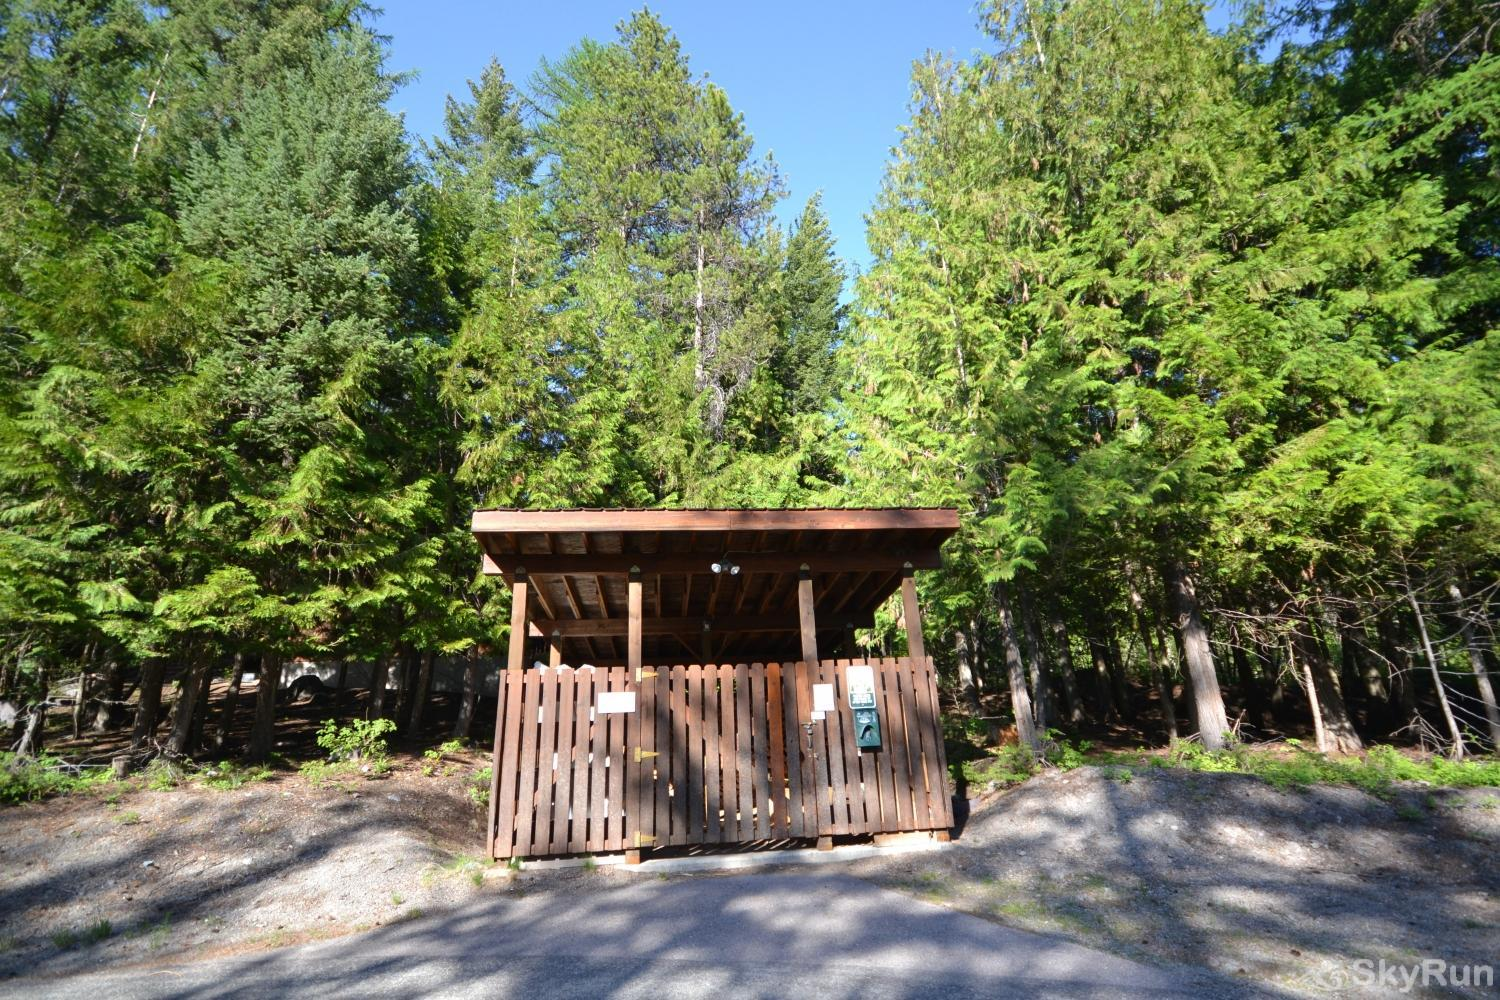 Ptarmigan Village 86 Firewood Shed steps away from parking